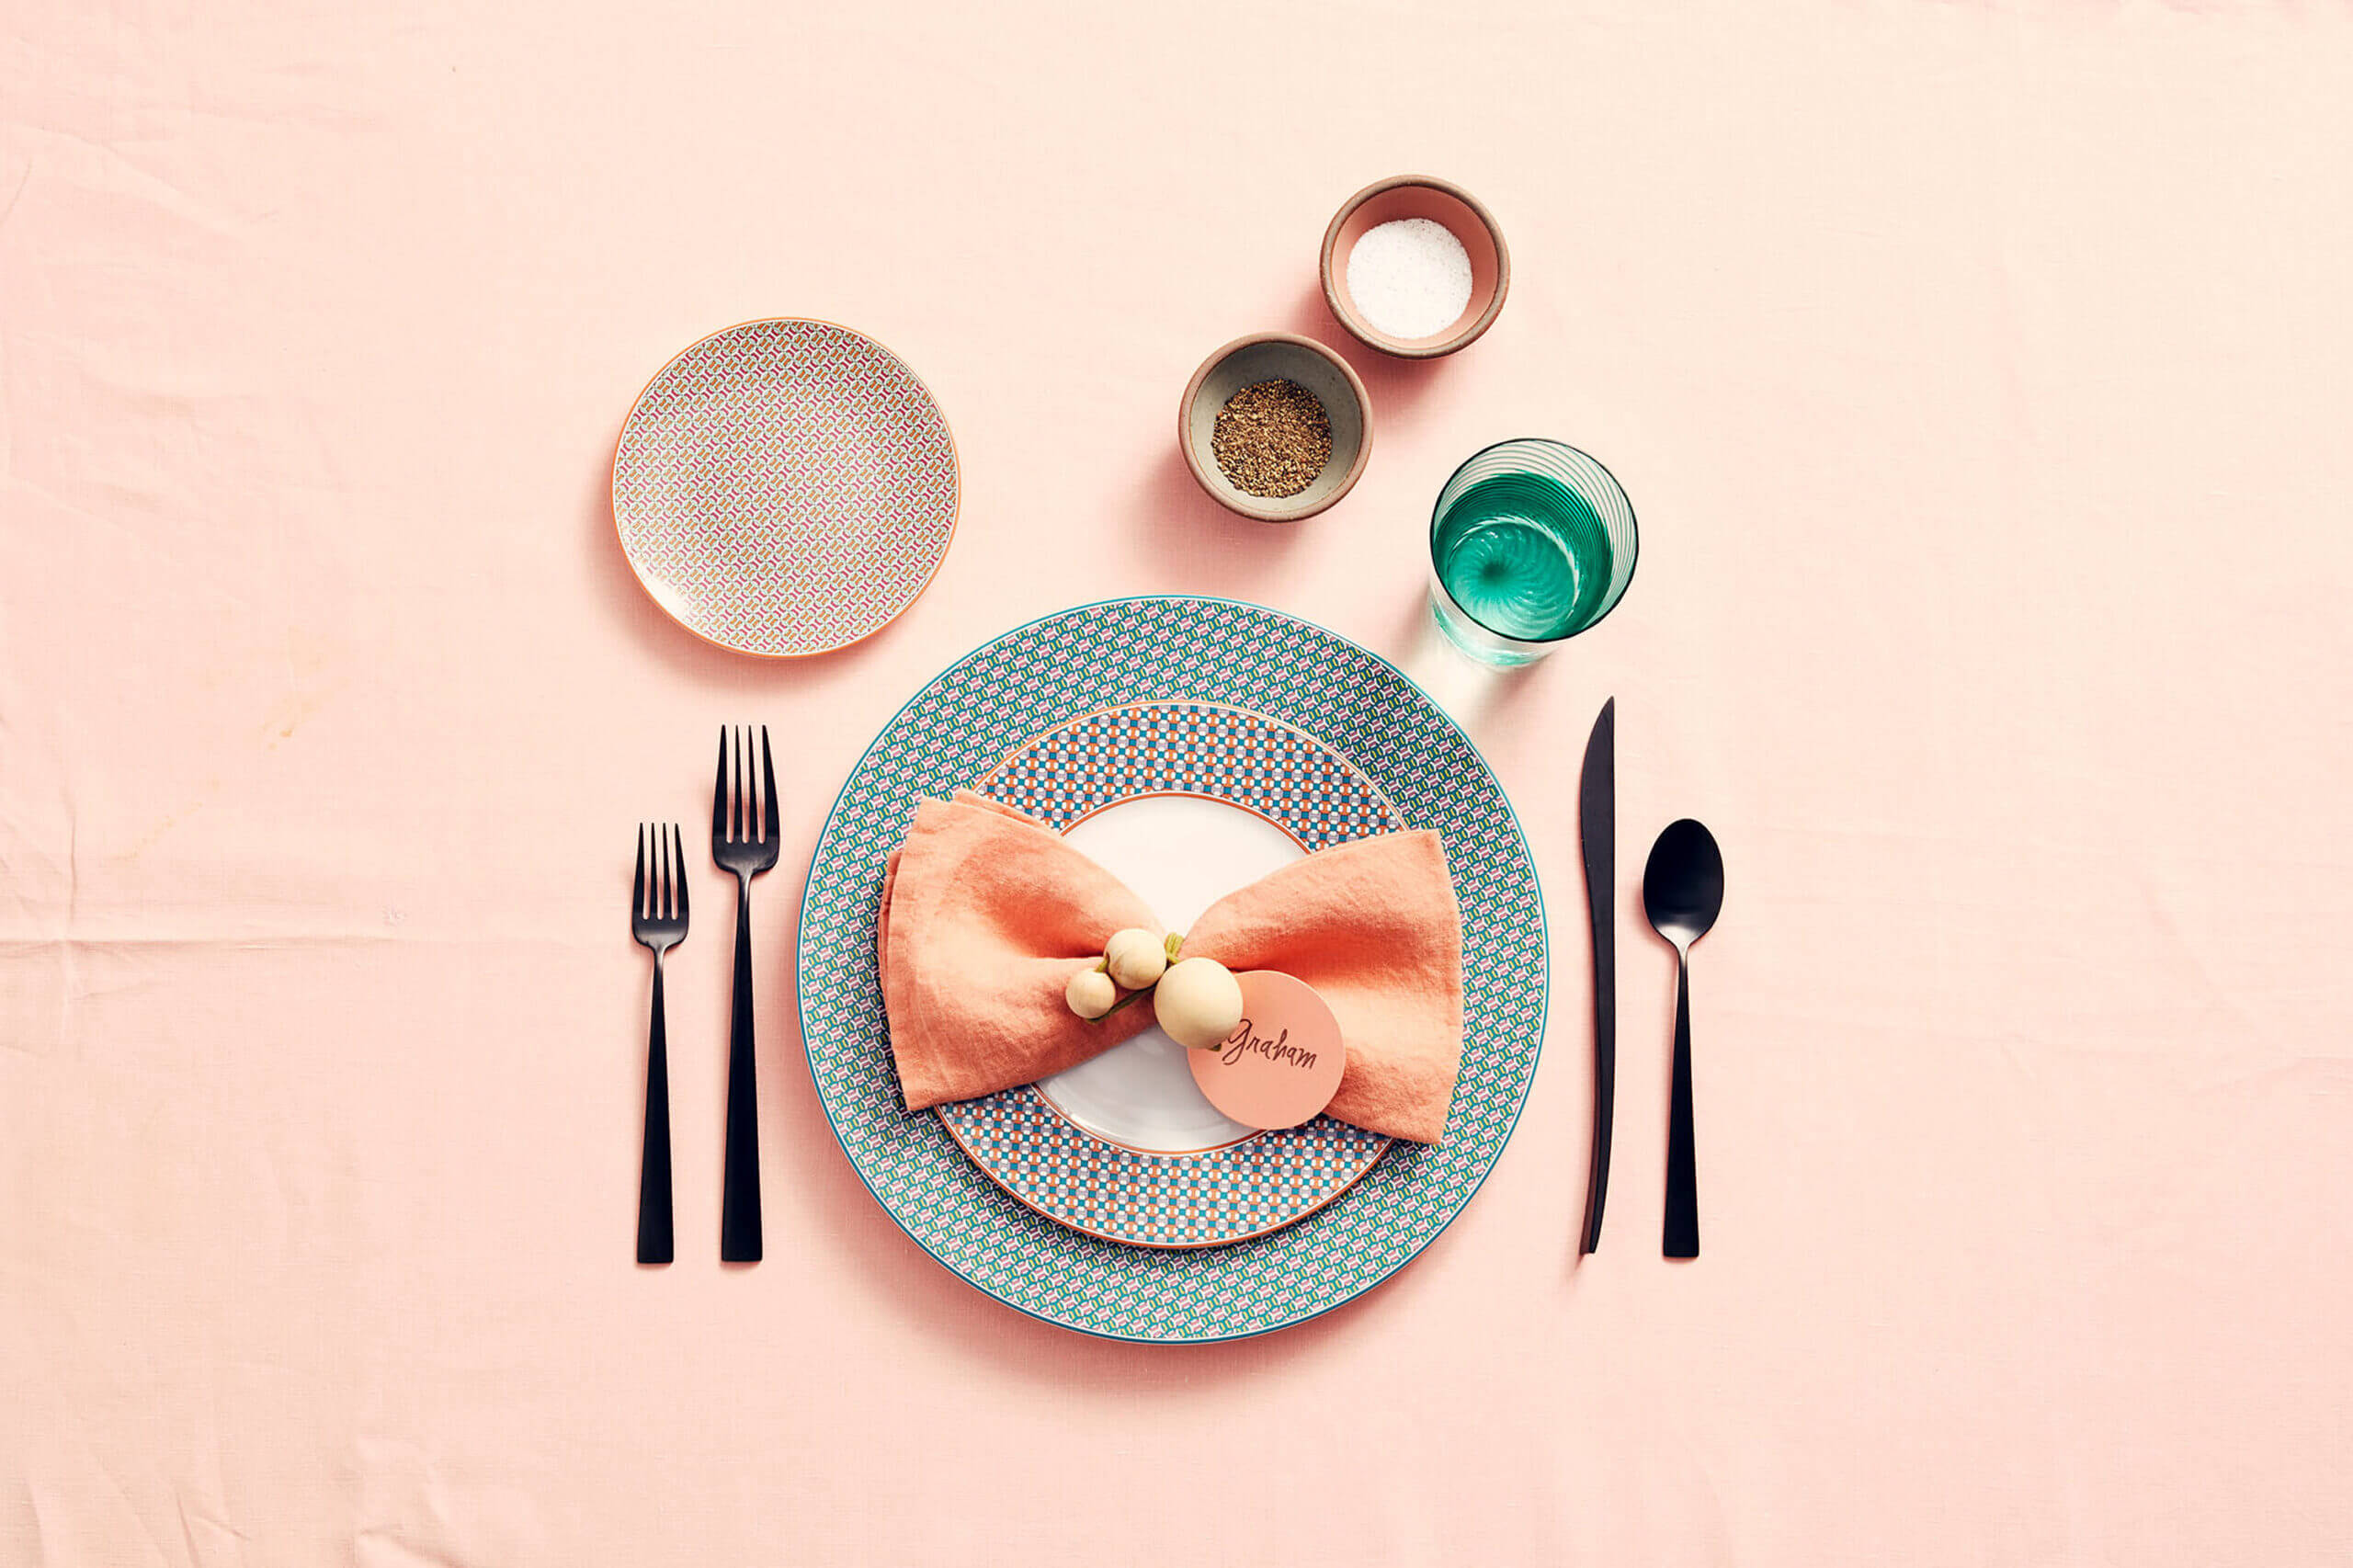 The Most Charming Place Card Ideas For Any Table Setting Or Throughout Celebrate It Templates Place Cards